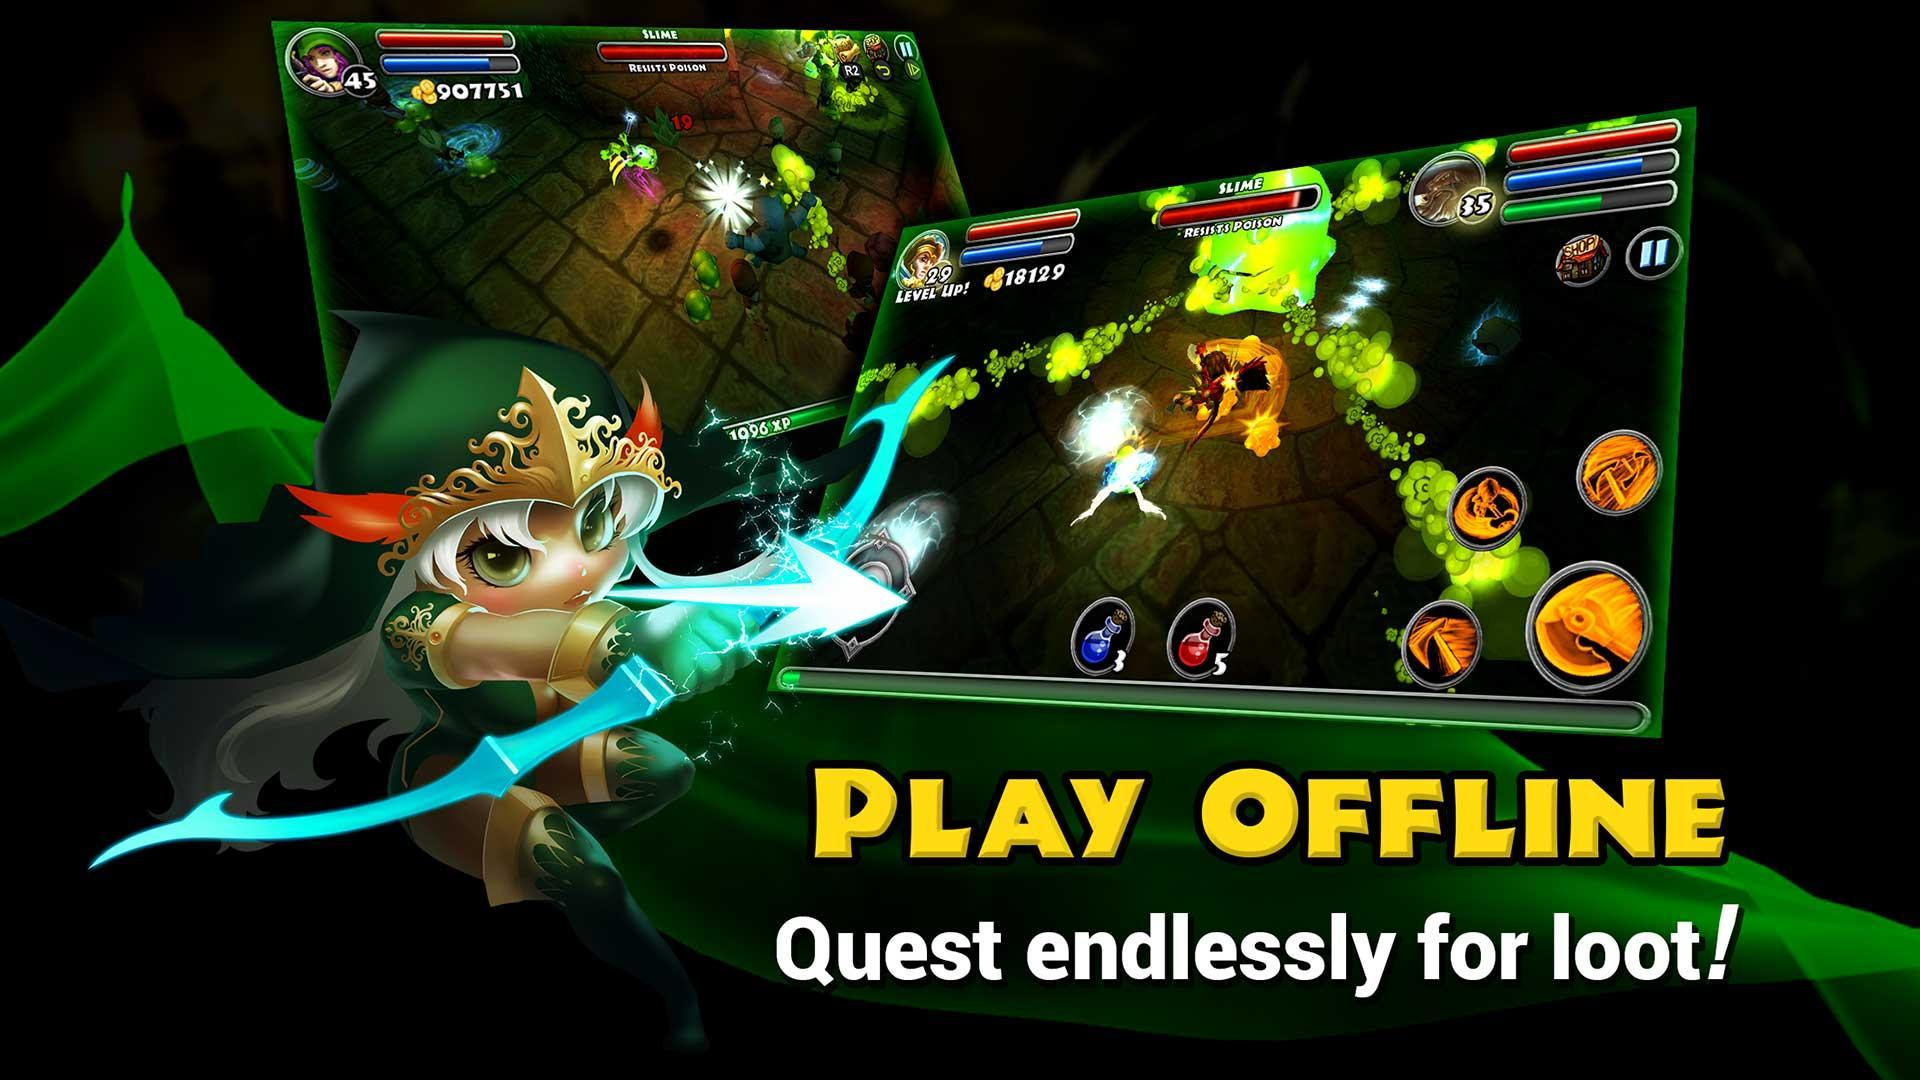 Roblox Dungeon Quest Red Knight Armor Dungeon Quest For Android Apk Download